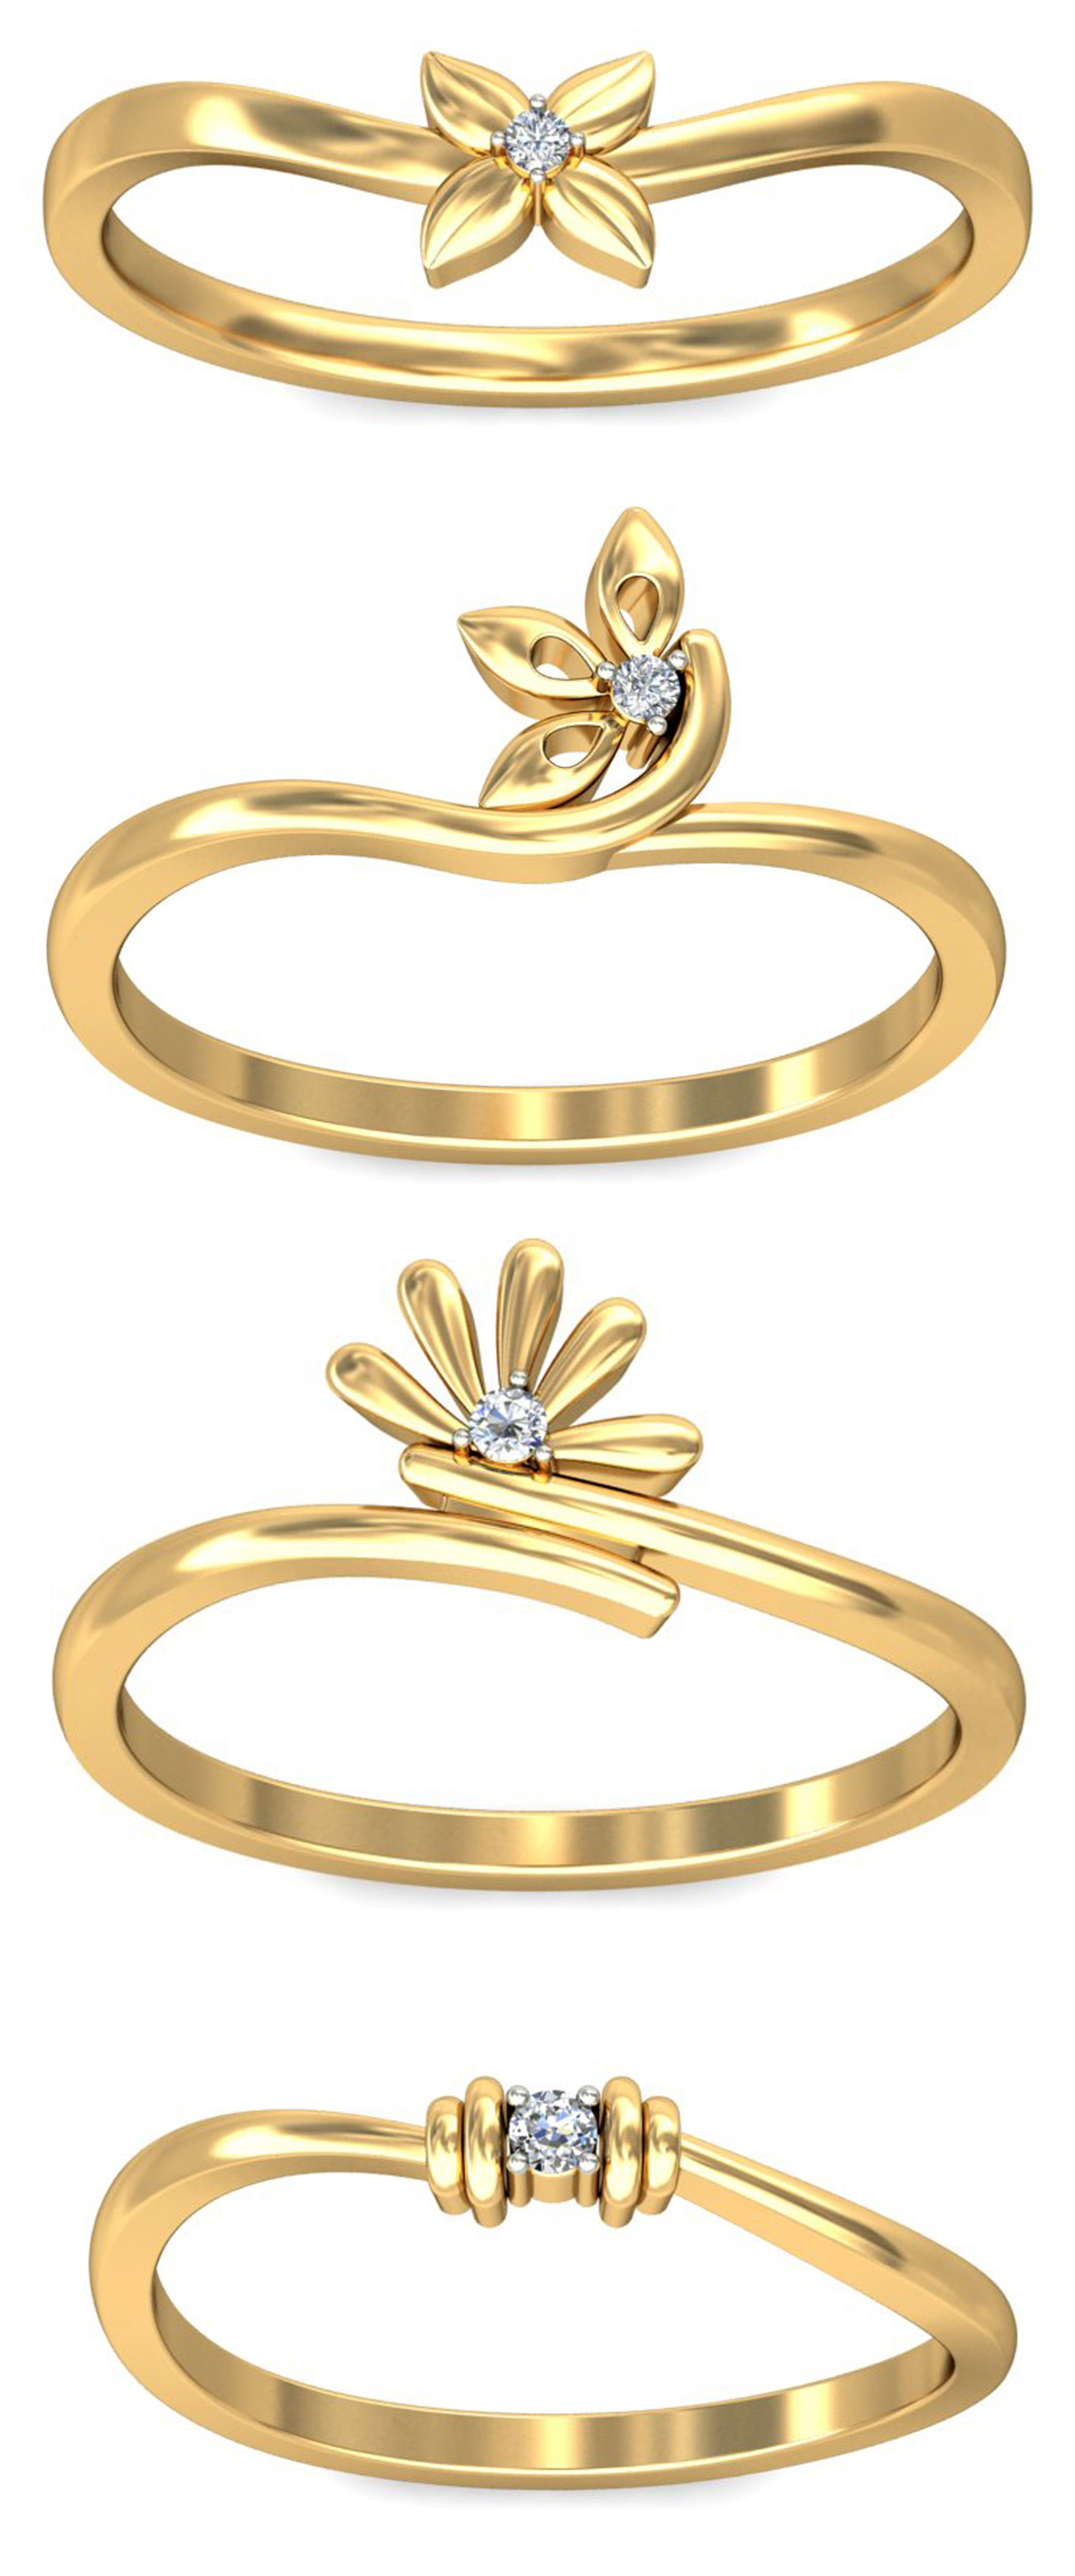 khanna jewels .com offers Diamond Gold Rings online at lowest ...